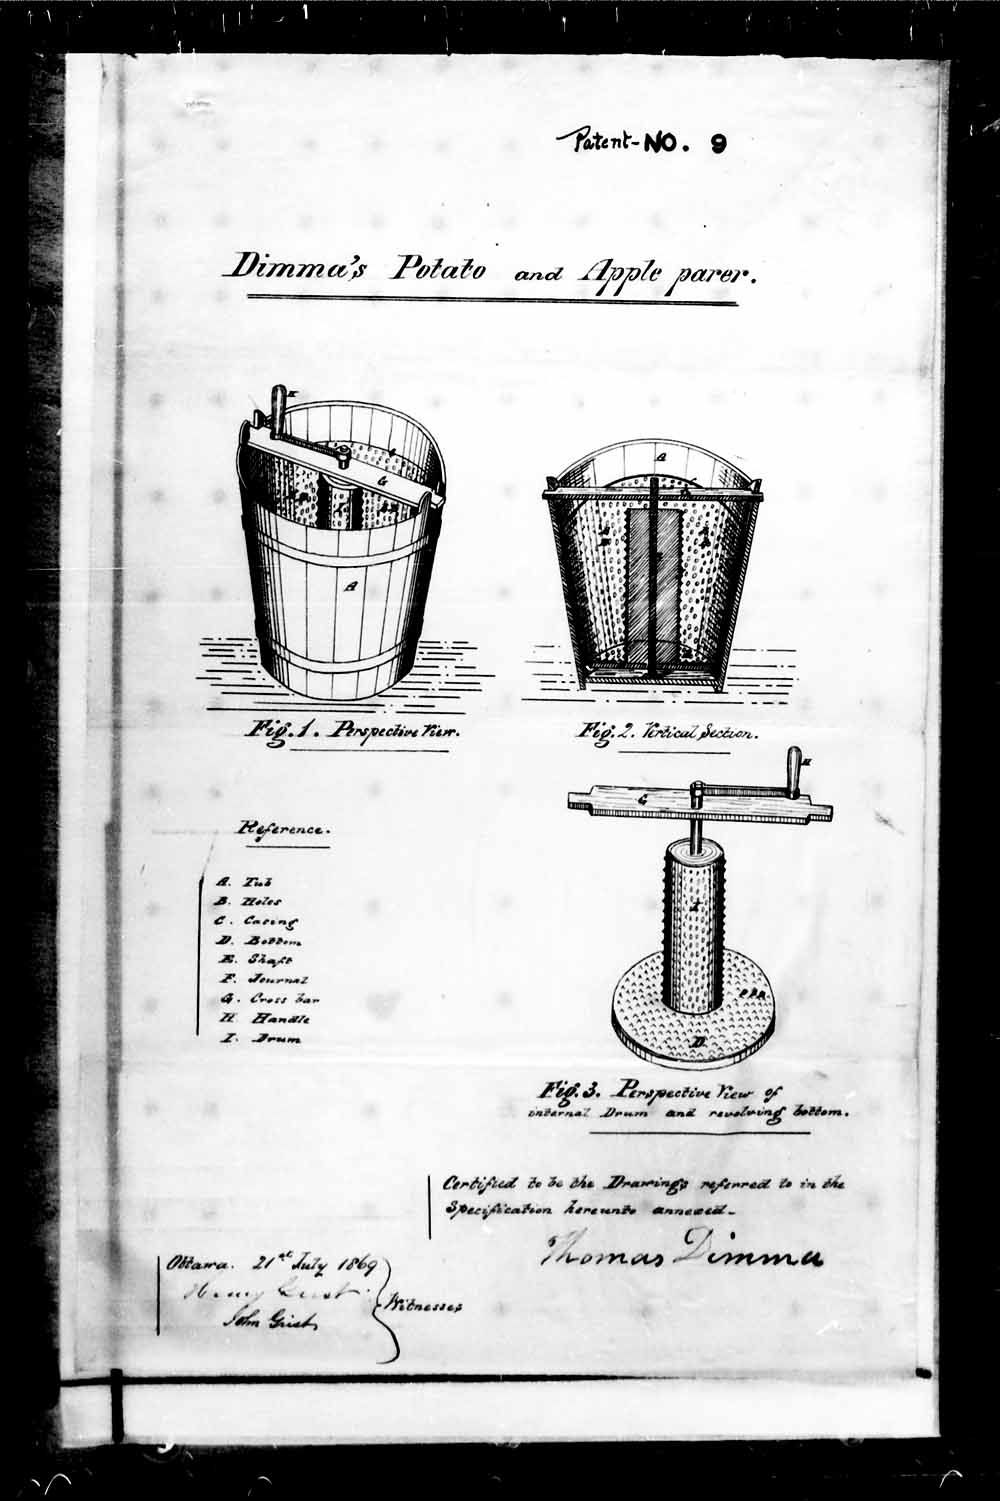 A POTATO AND APPLE PARER, p. 7